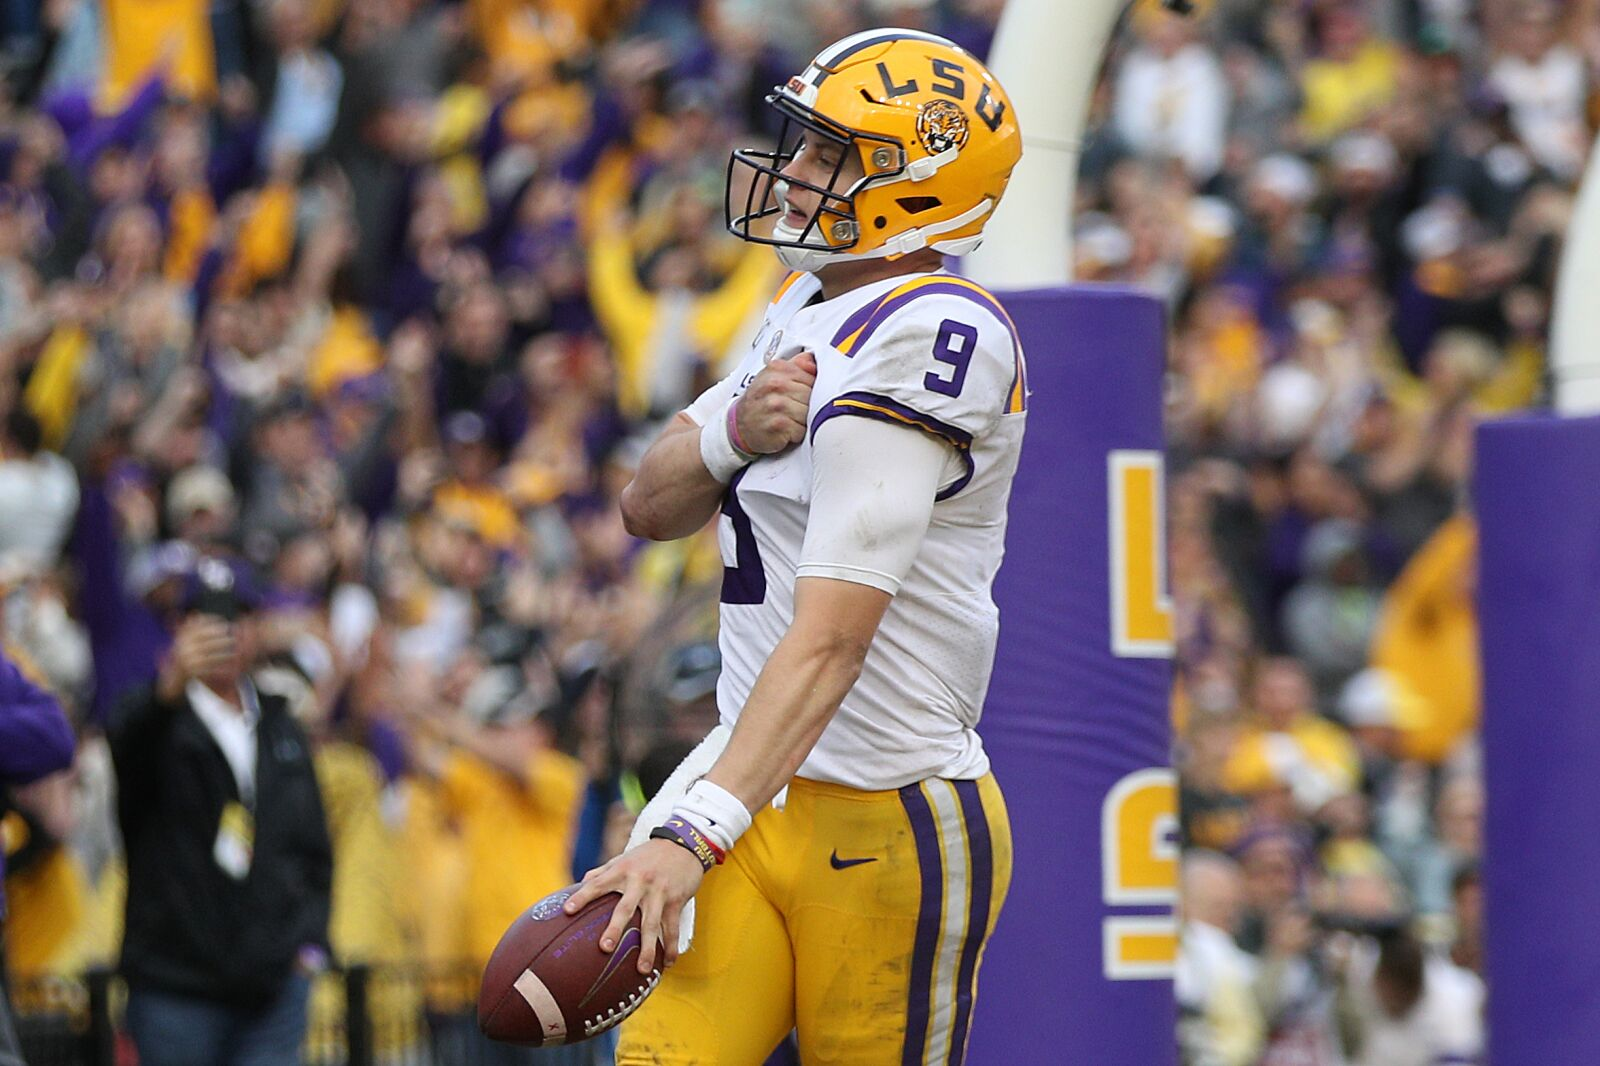 2020 NFL Draft: LSU's Joe Burrow continues to pass every test